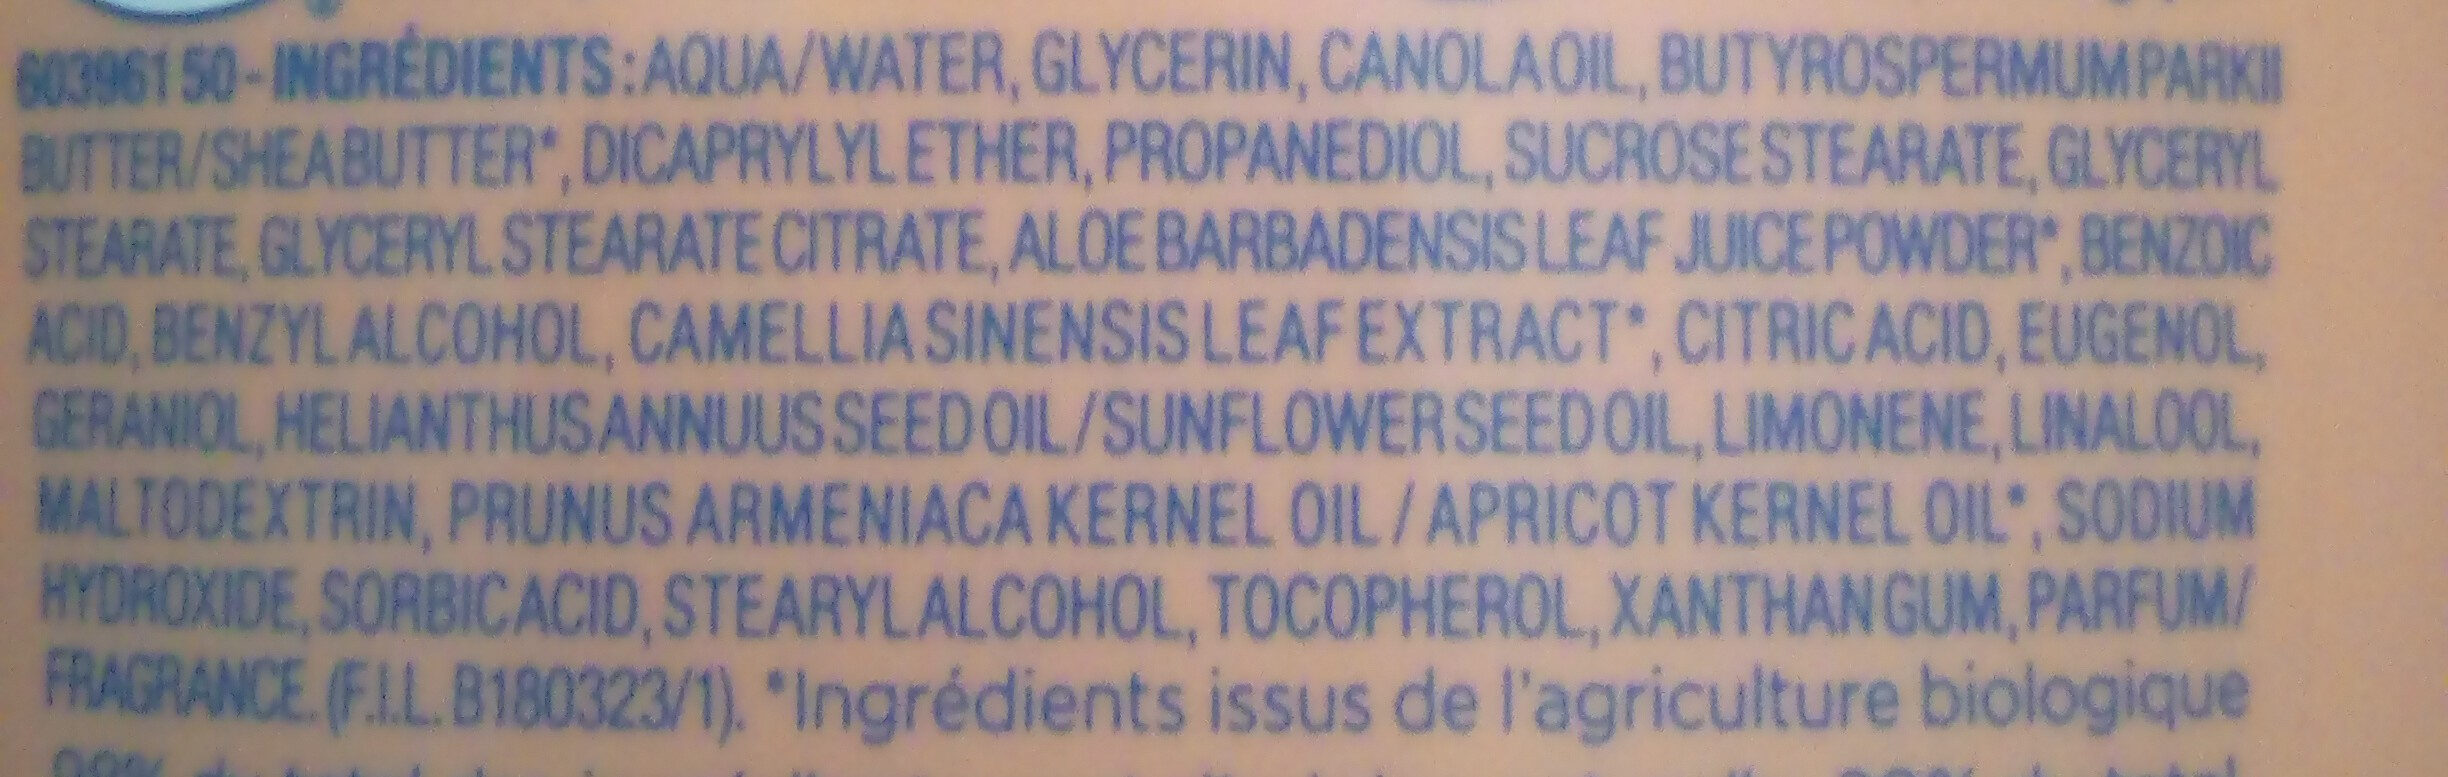 Lait corps nutritif protecteur - Ingredients